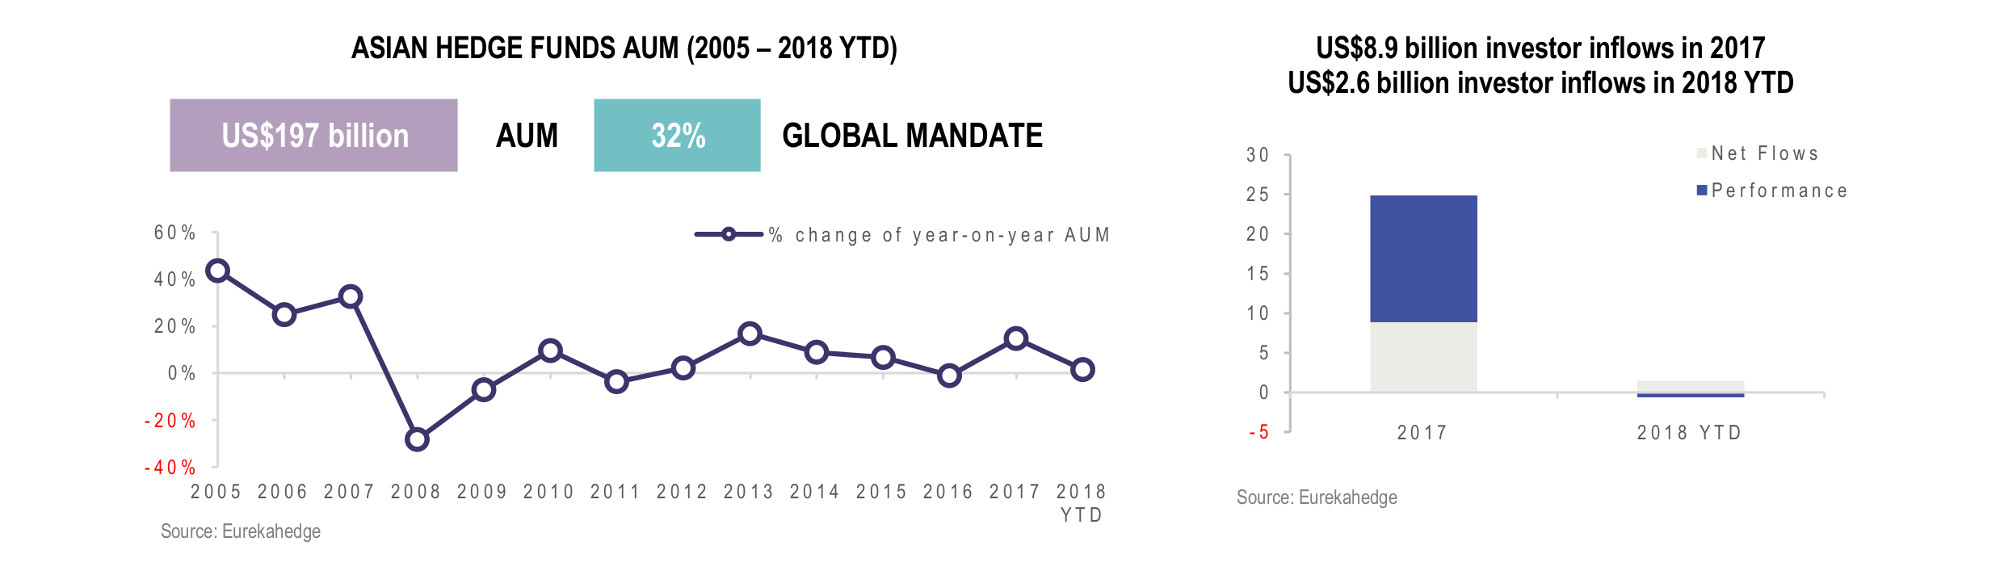 Asian Hedge Funds Infographic September 2018 - AUM